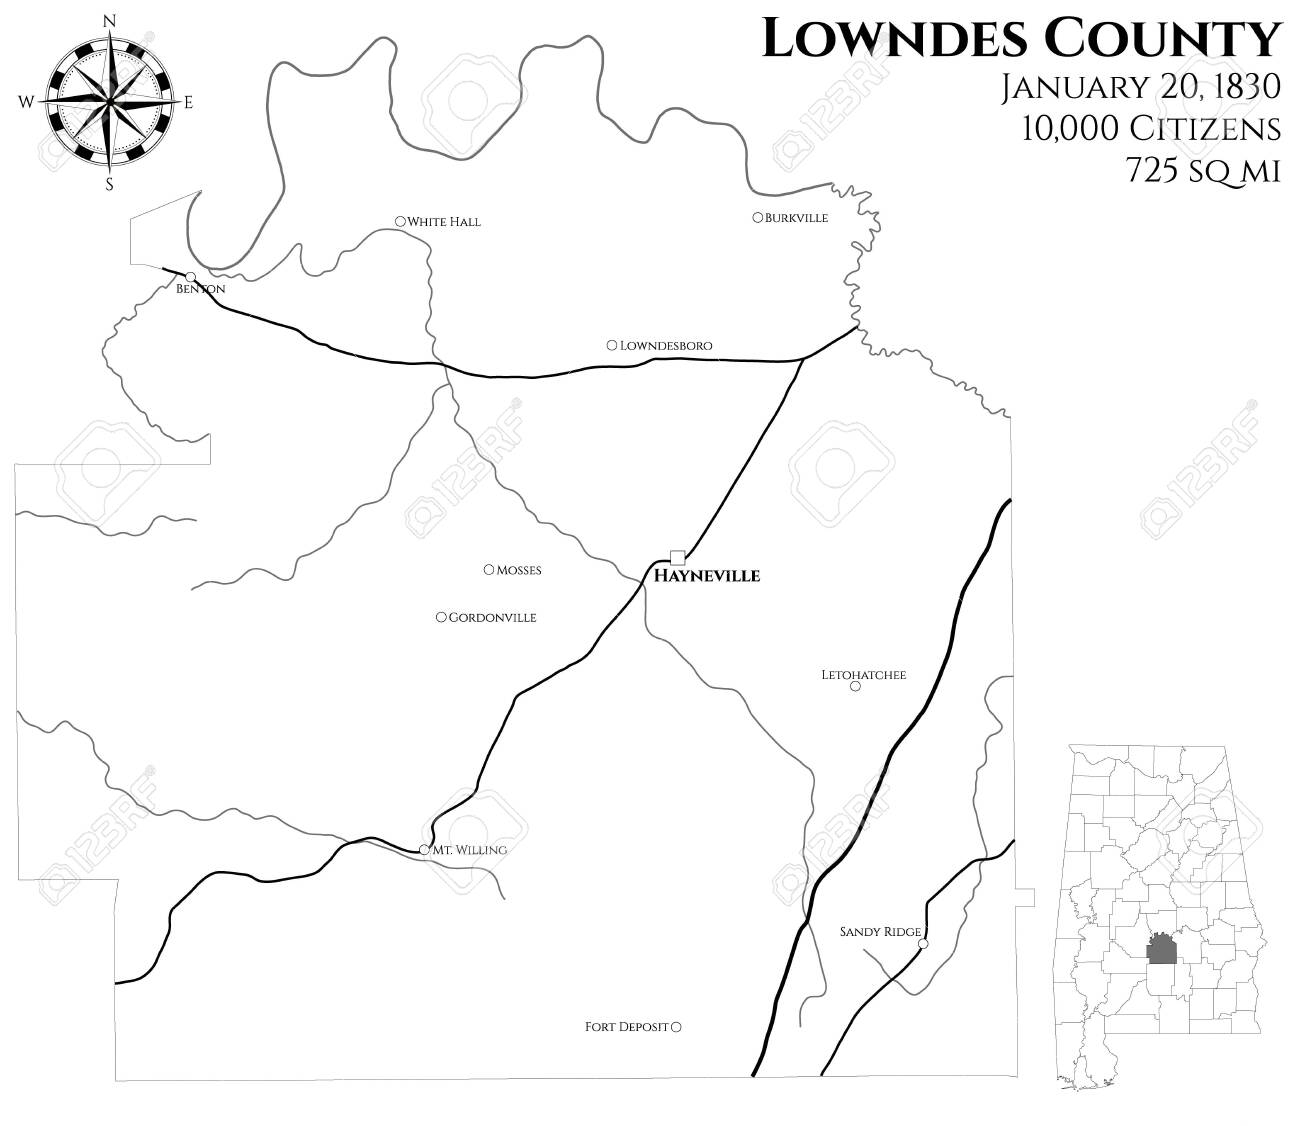 Large and detailed map of Lowndes County in Alabama, USA on map of oxford alabama, map of troy university alabama, map of alabama and georgia, fort deposit alabama, lowndes county schools alabama, map of georgiana alabama, map of cobb county georgia, map of wetumpka alabama, map of louisiana alabama, map of carroll county mississippi, map of mobile alabama, cities in calhoun county alabama, map of alabama river alabama, cities in russell county alabama, lowndes middle school alabama, map of lowndes county mississippi, map of eclectic alabama, map of hayneville alabama, cities in lowndes county alabama, plantations in lowndes county alabama,